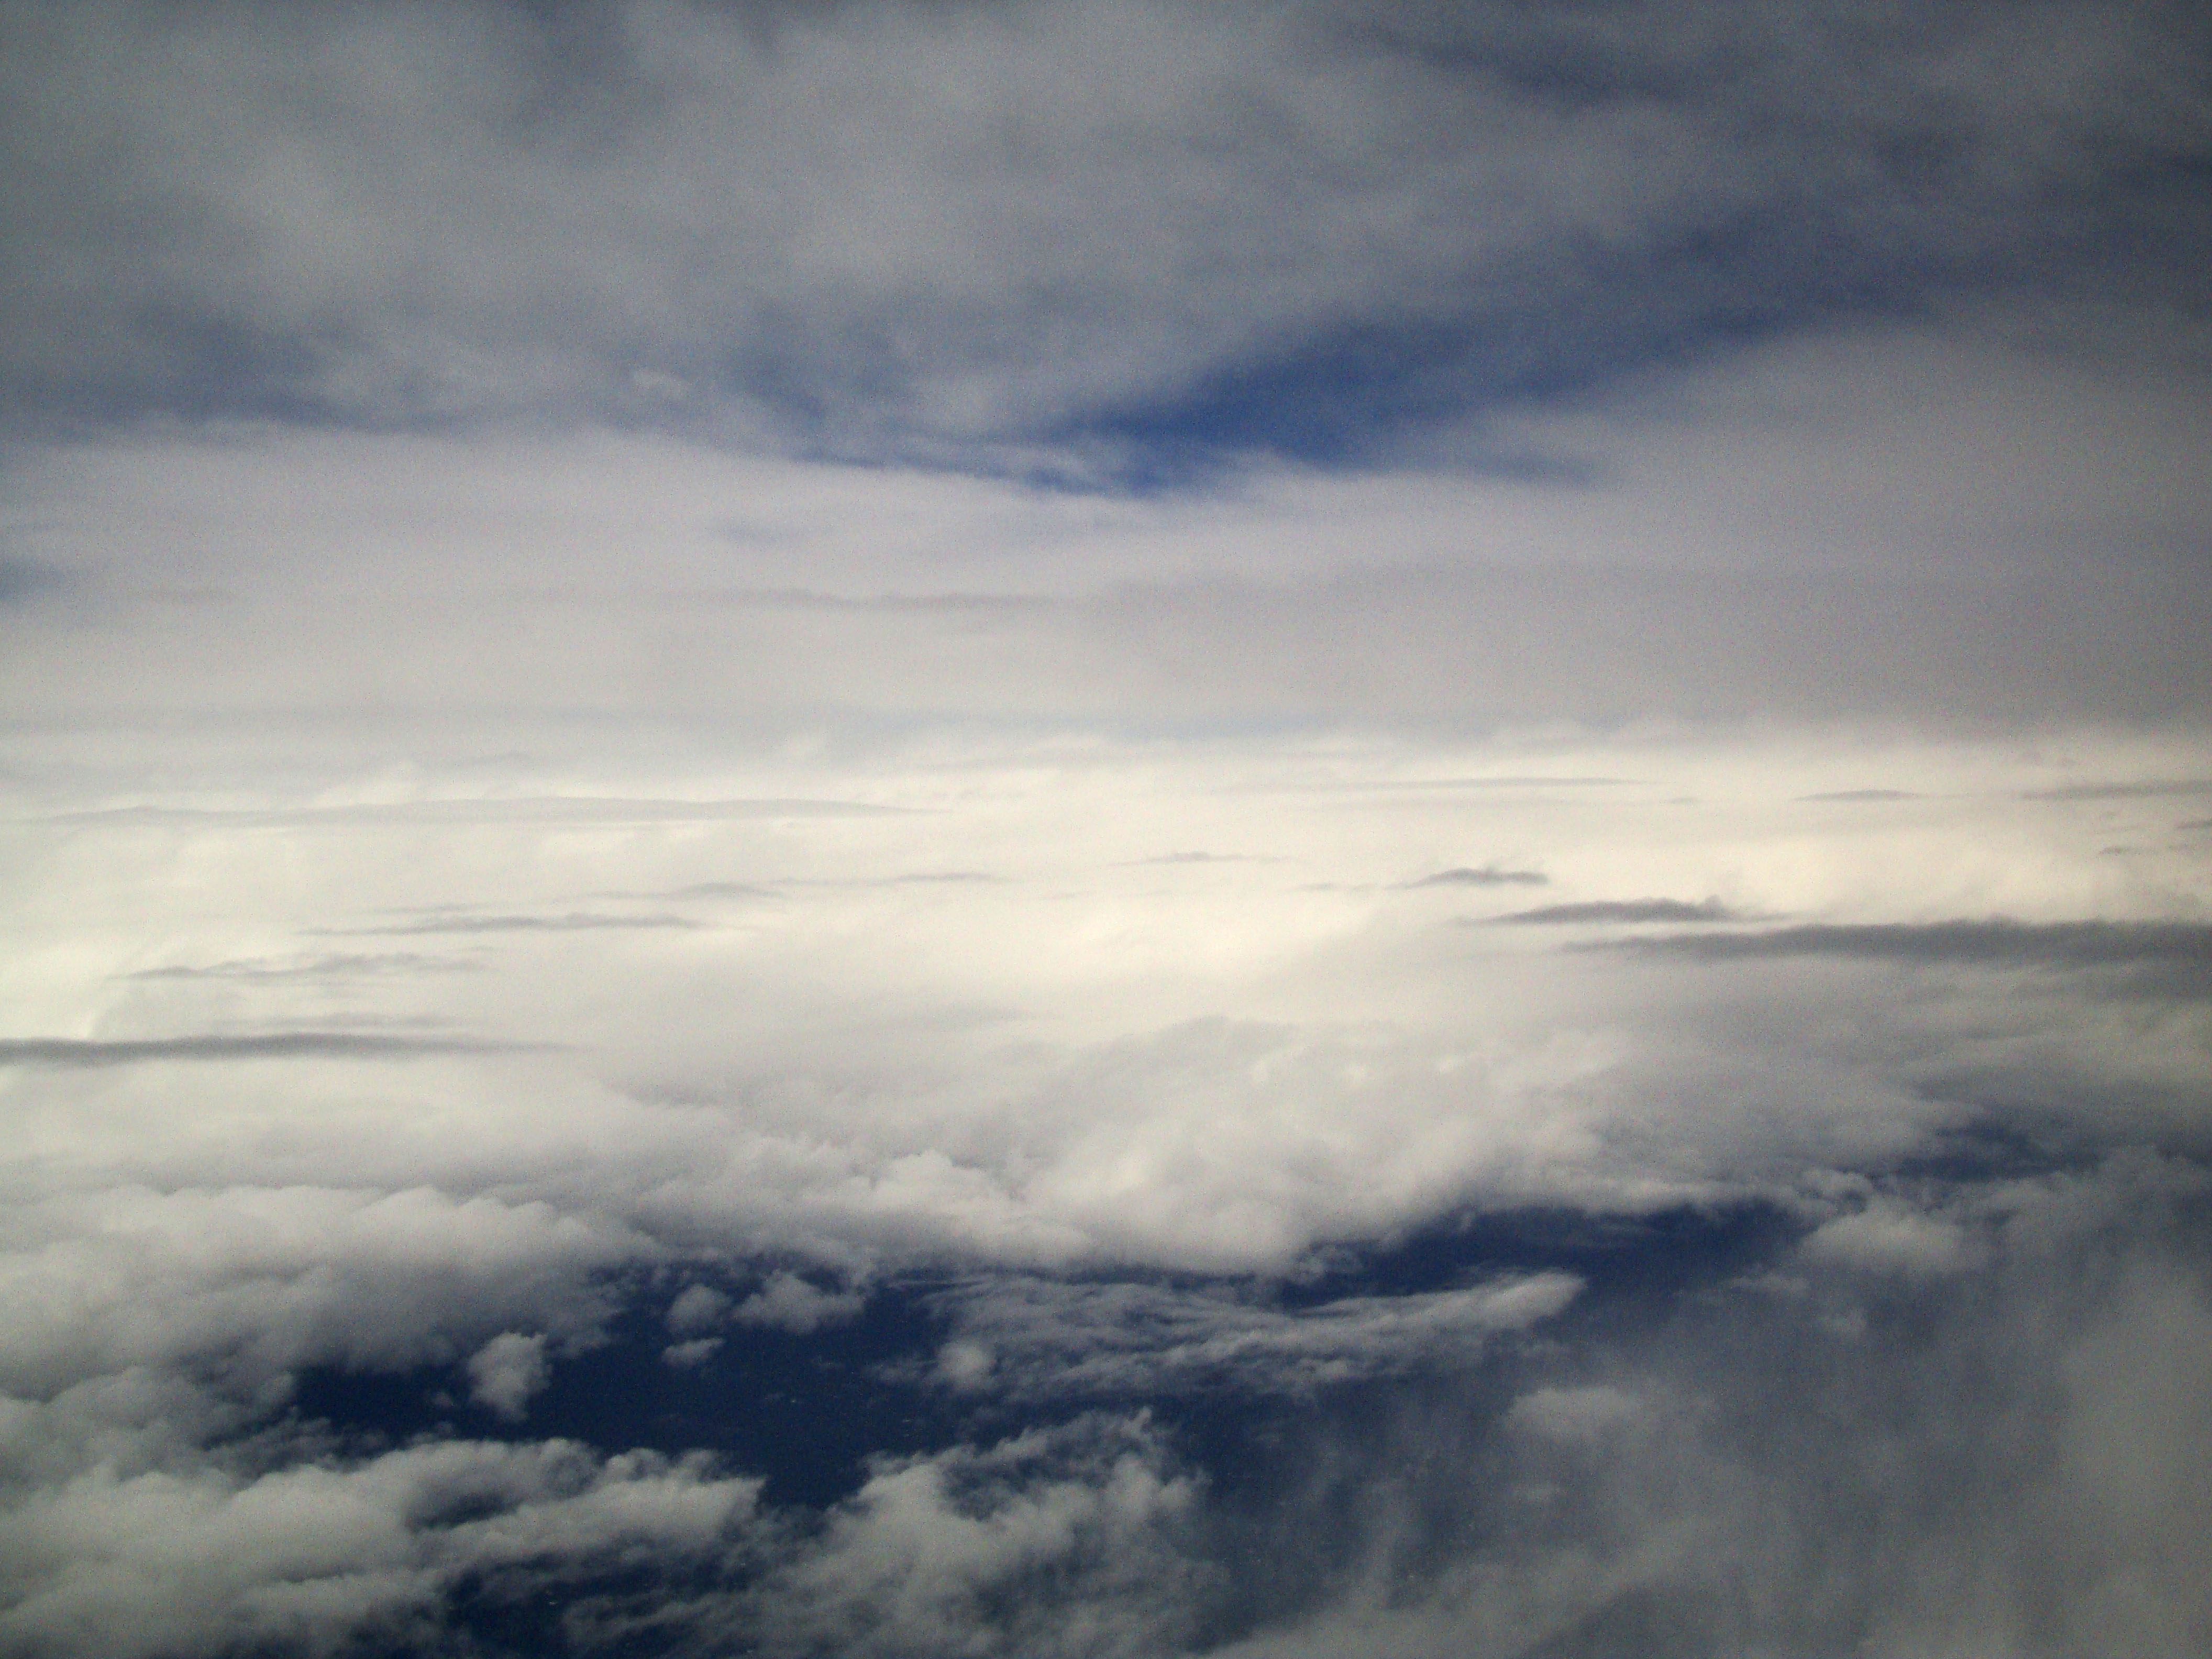 Textures Clouds Formations Sky Storms Weather Phenomena Aerial Views 18